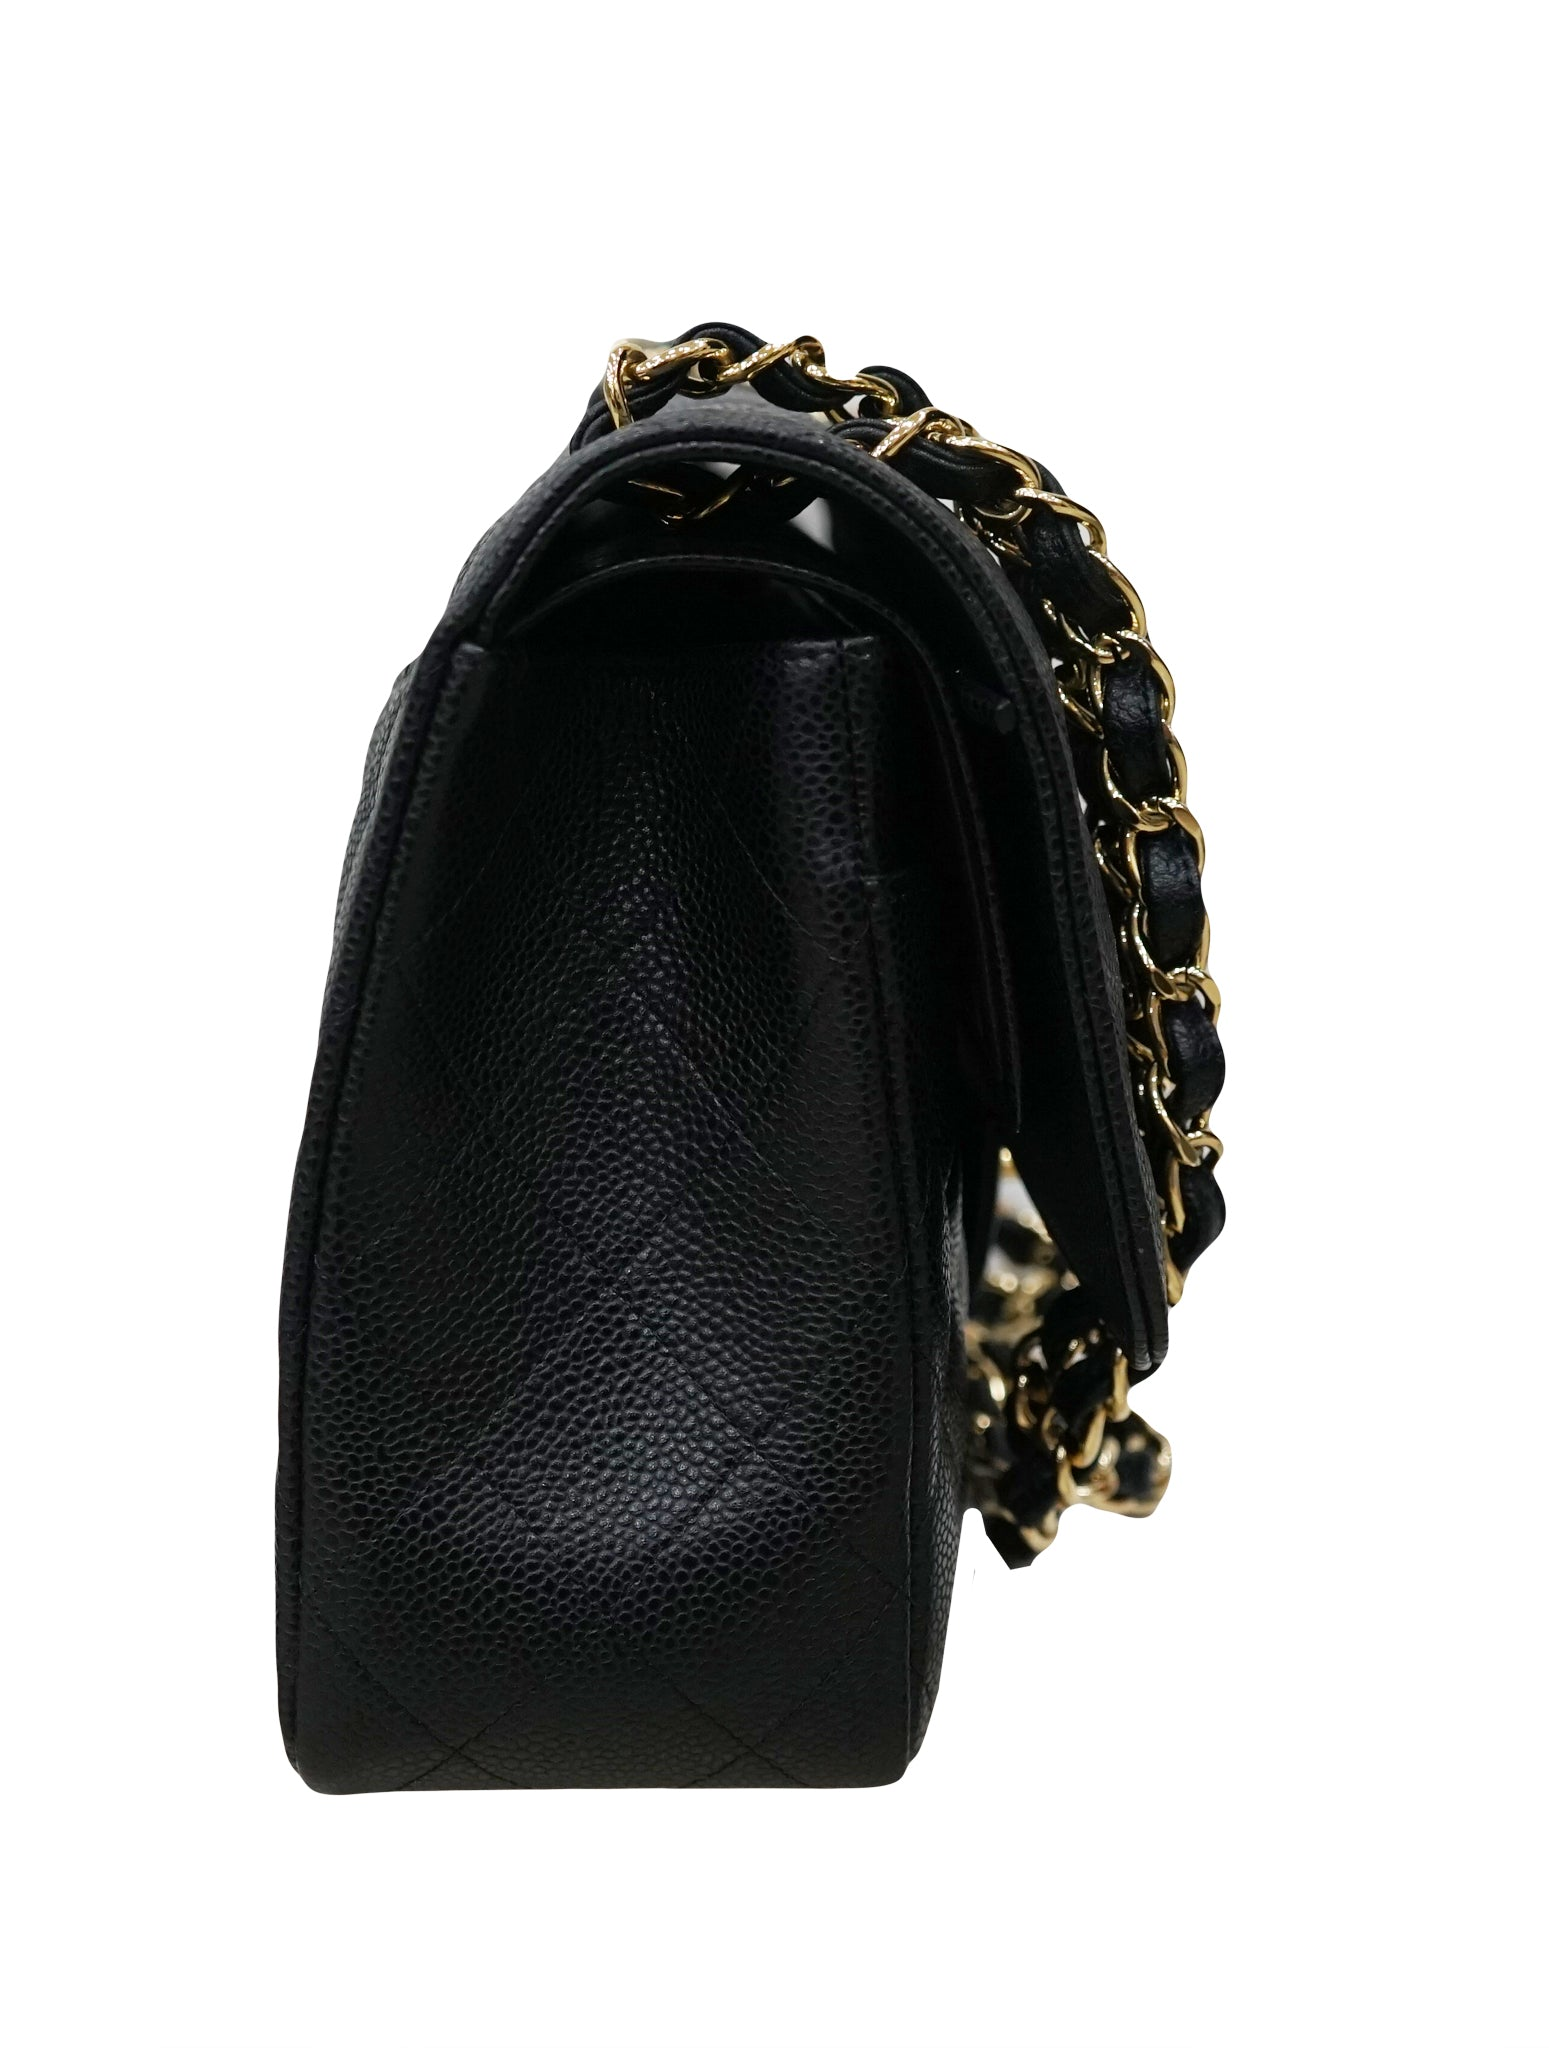 QUILTED CAVIAR LEATHER DOUBLE FLAP